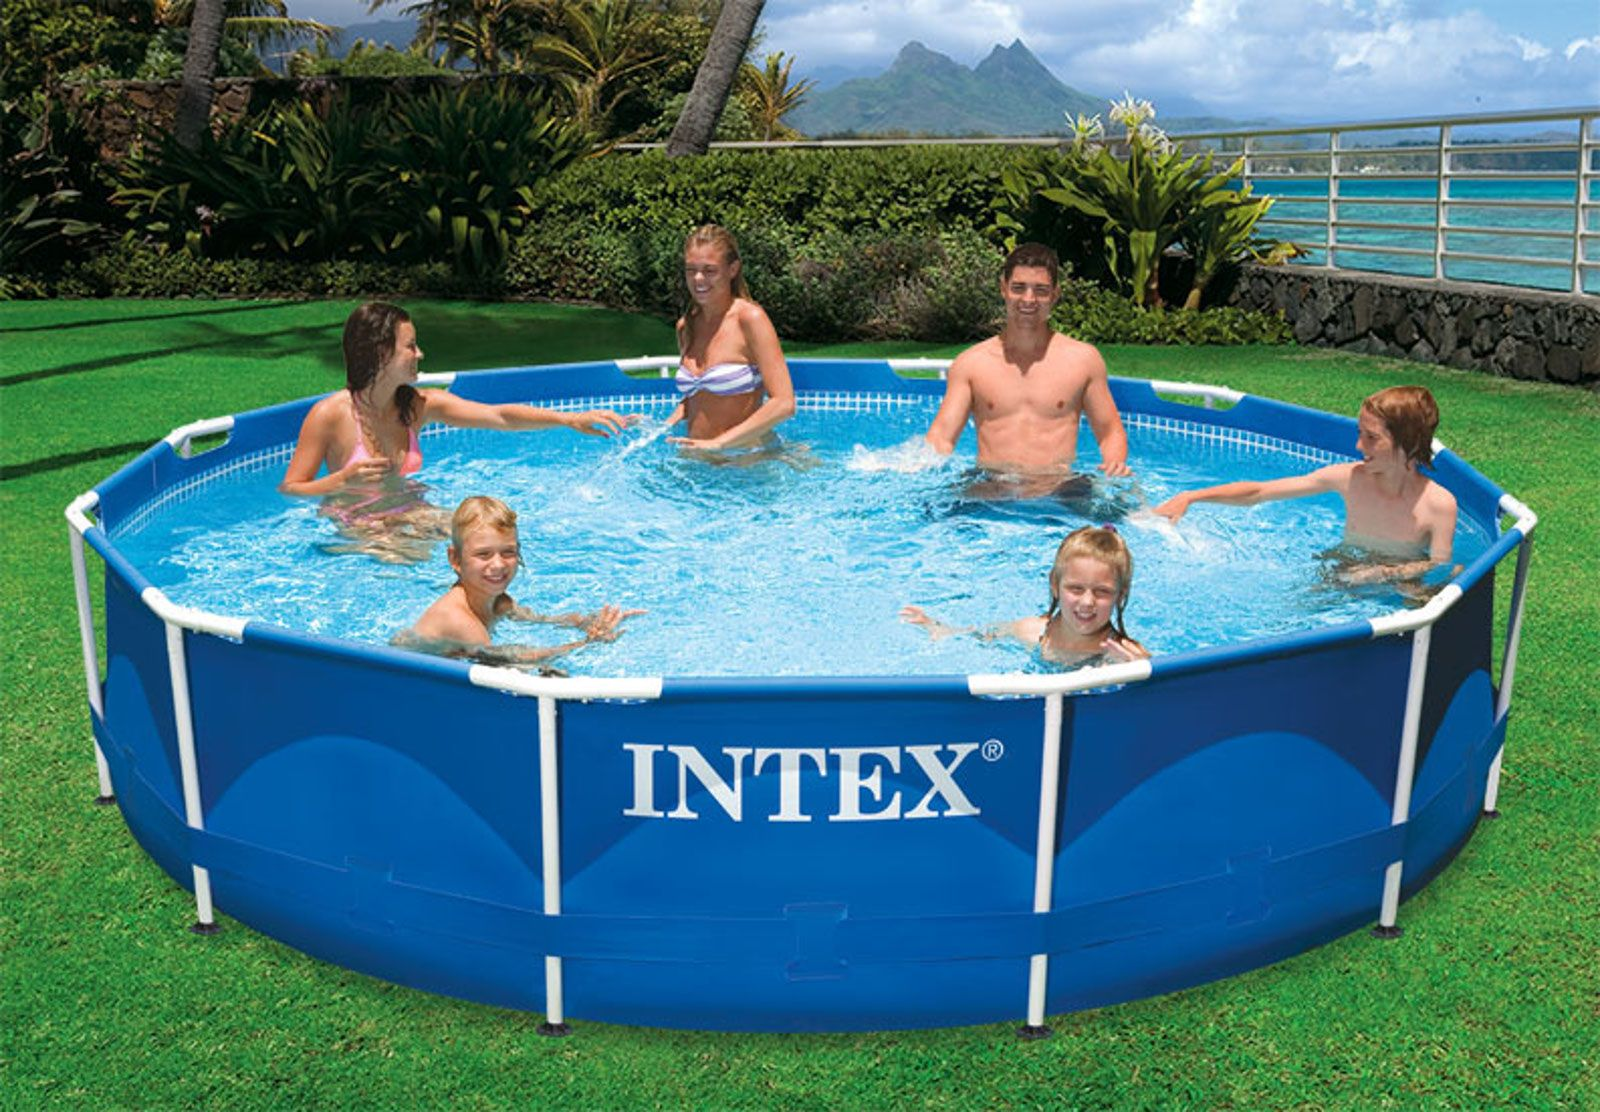 Intex 12 X 30 Metal Frame Pool 108 99 Above Ground Swimming Pools Swimming Pool Filters Intex